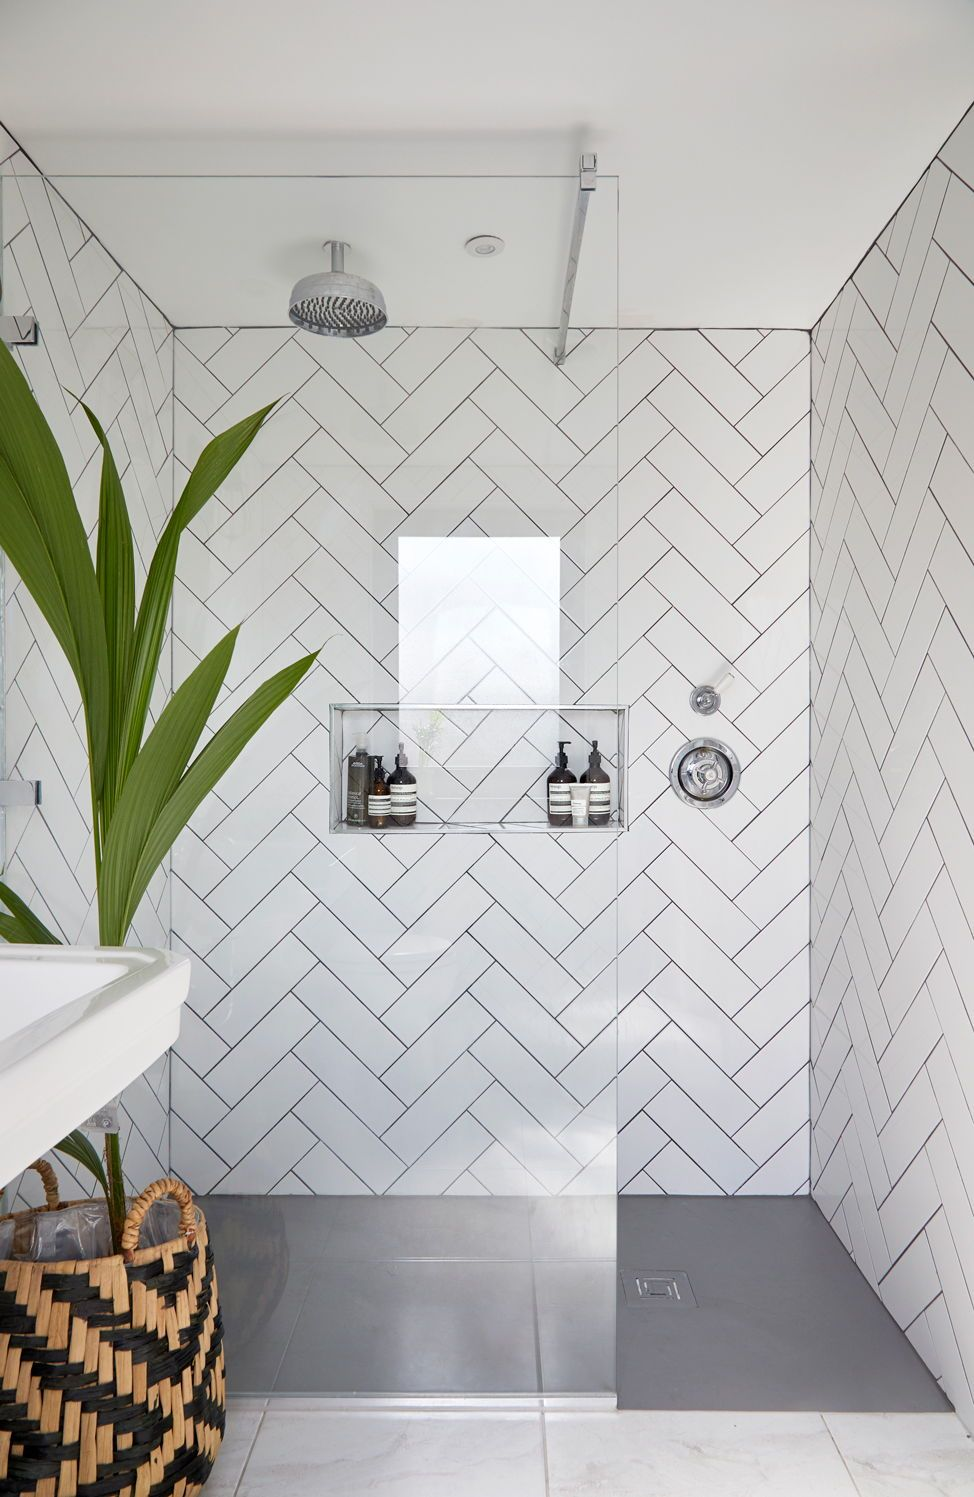 White Chevron tiling in shower. Glass panels with black frame? #loftconversions